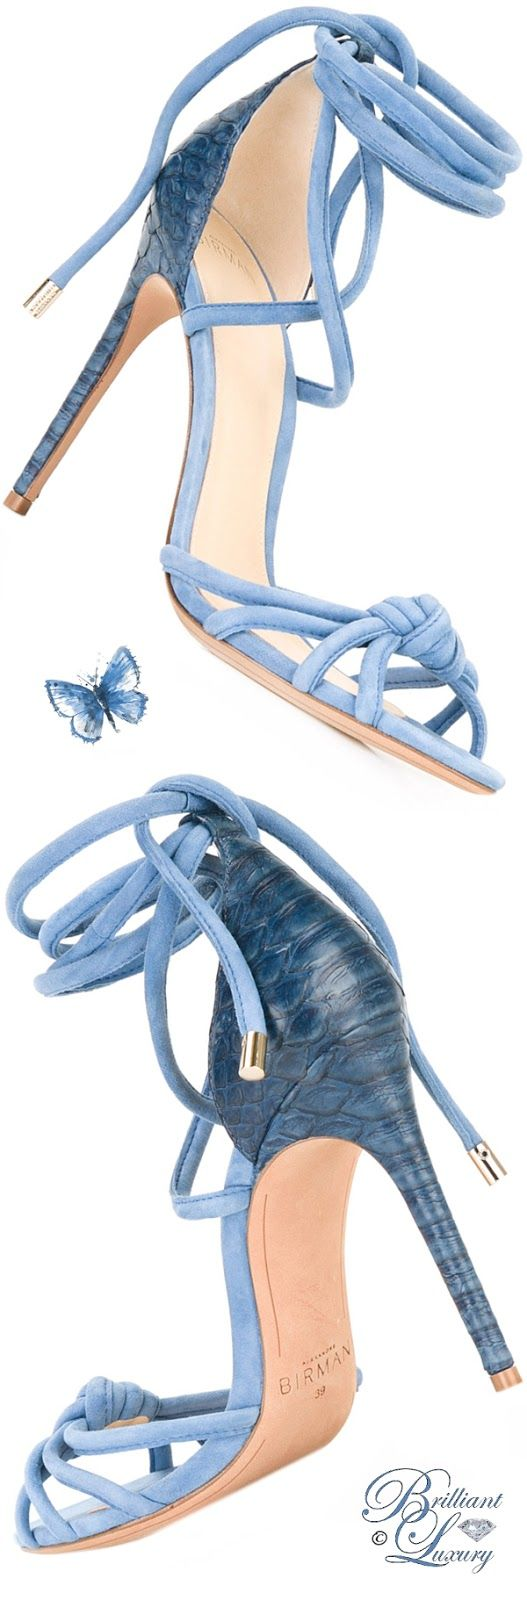 Brilliant Luxury by Emmy DE ♦ Alexandre Birman 'Layla' Sandals